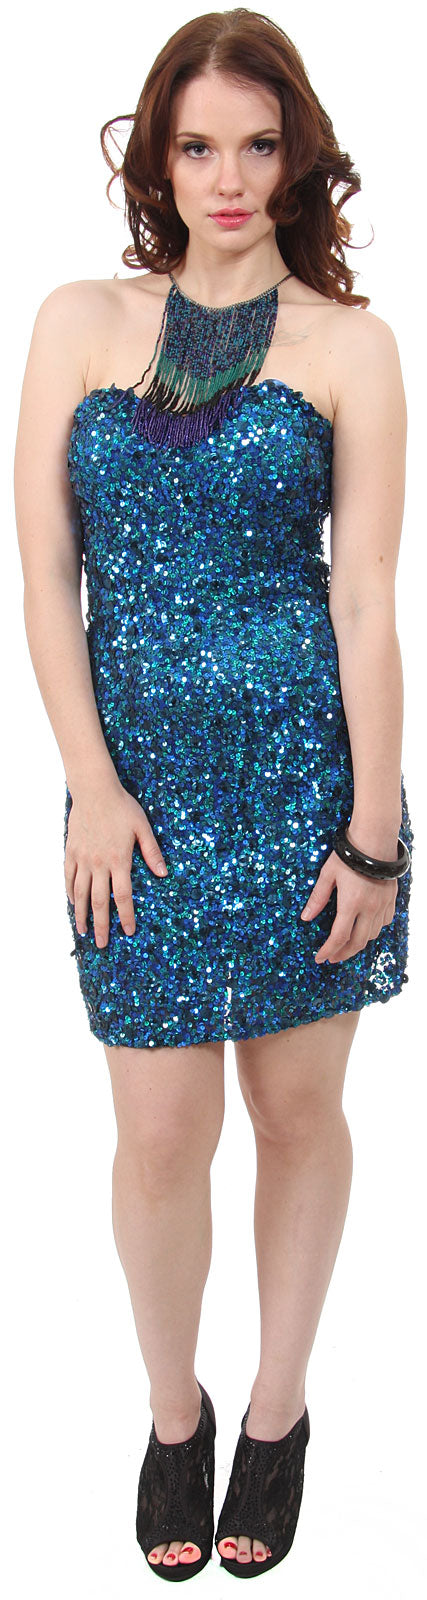 Main image of Strapless Sweetheart Neck Sequined Party Prom Dress